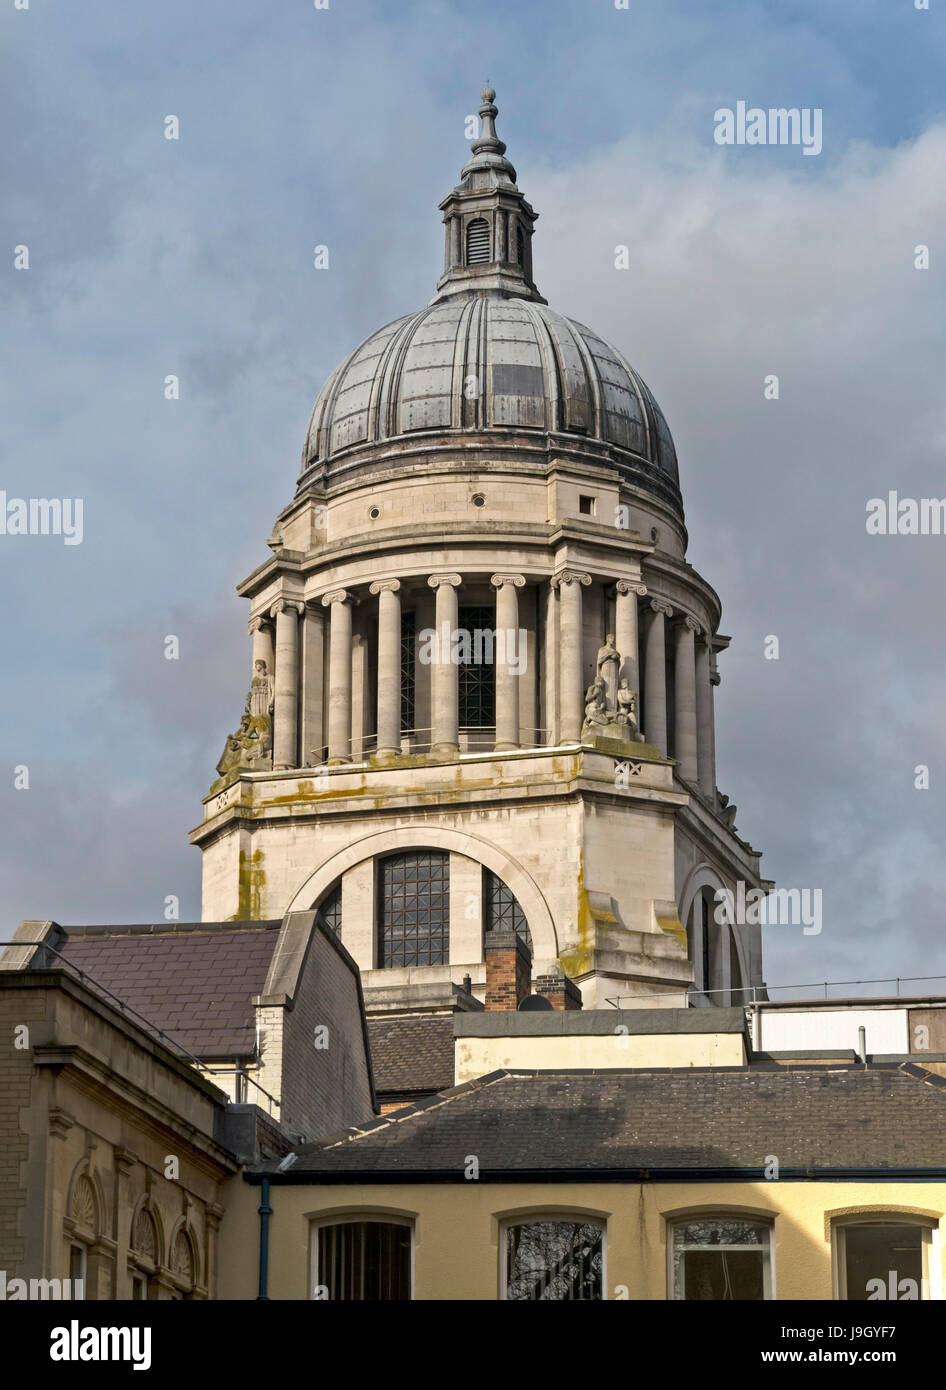 Ornate lead dome roof with ionic columns and cupola on roof of Nottingham Council House building, Nottingham, England, - Stock Image